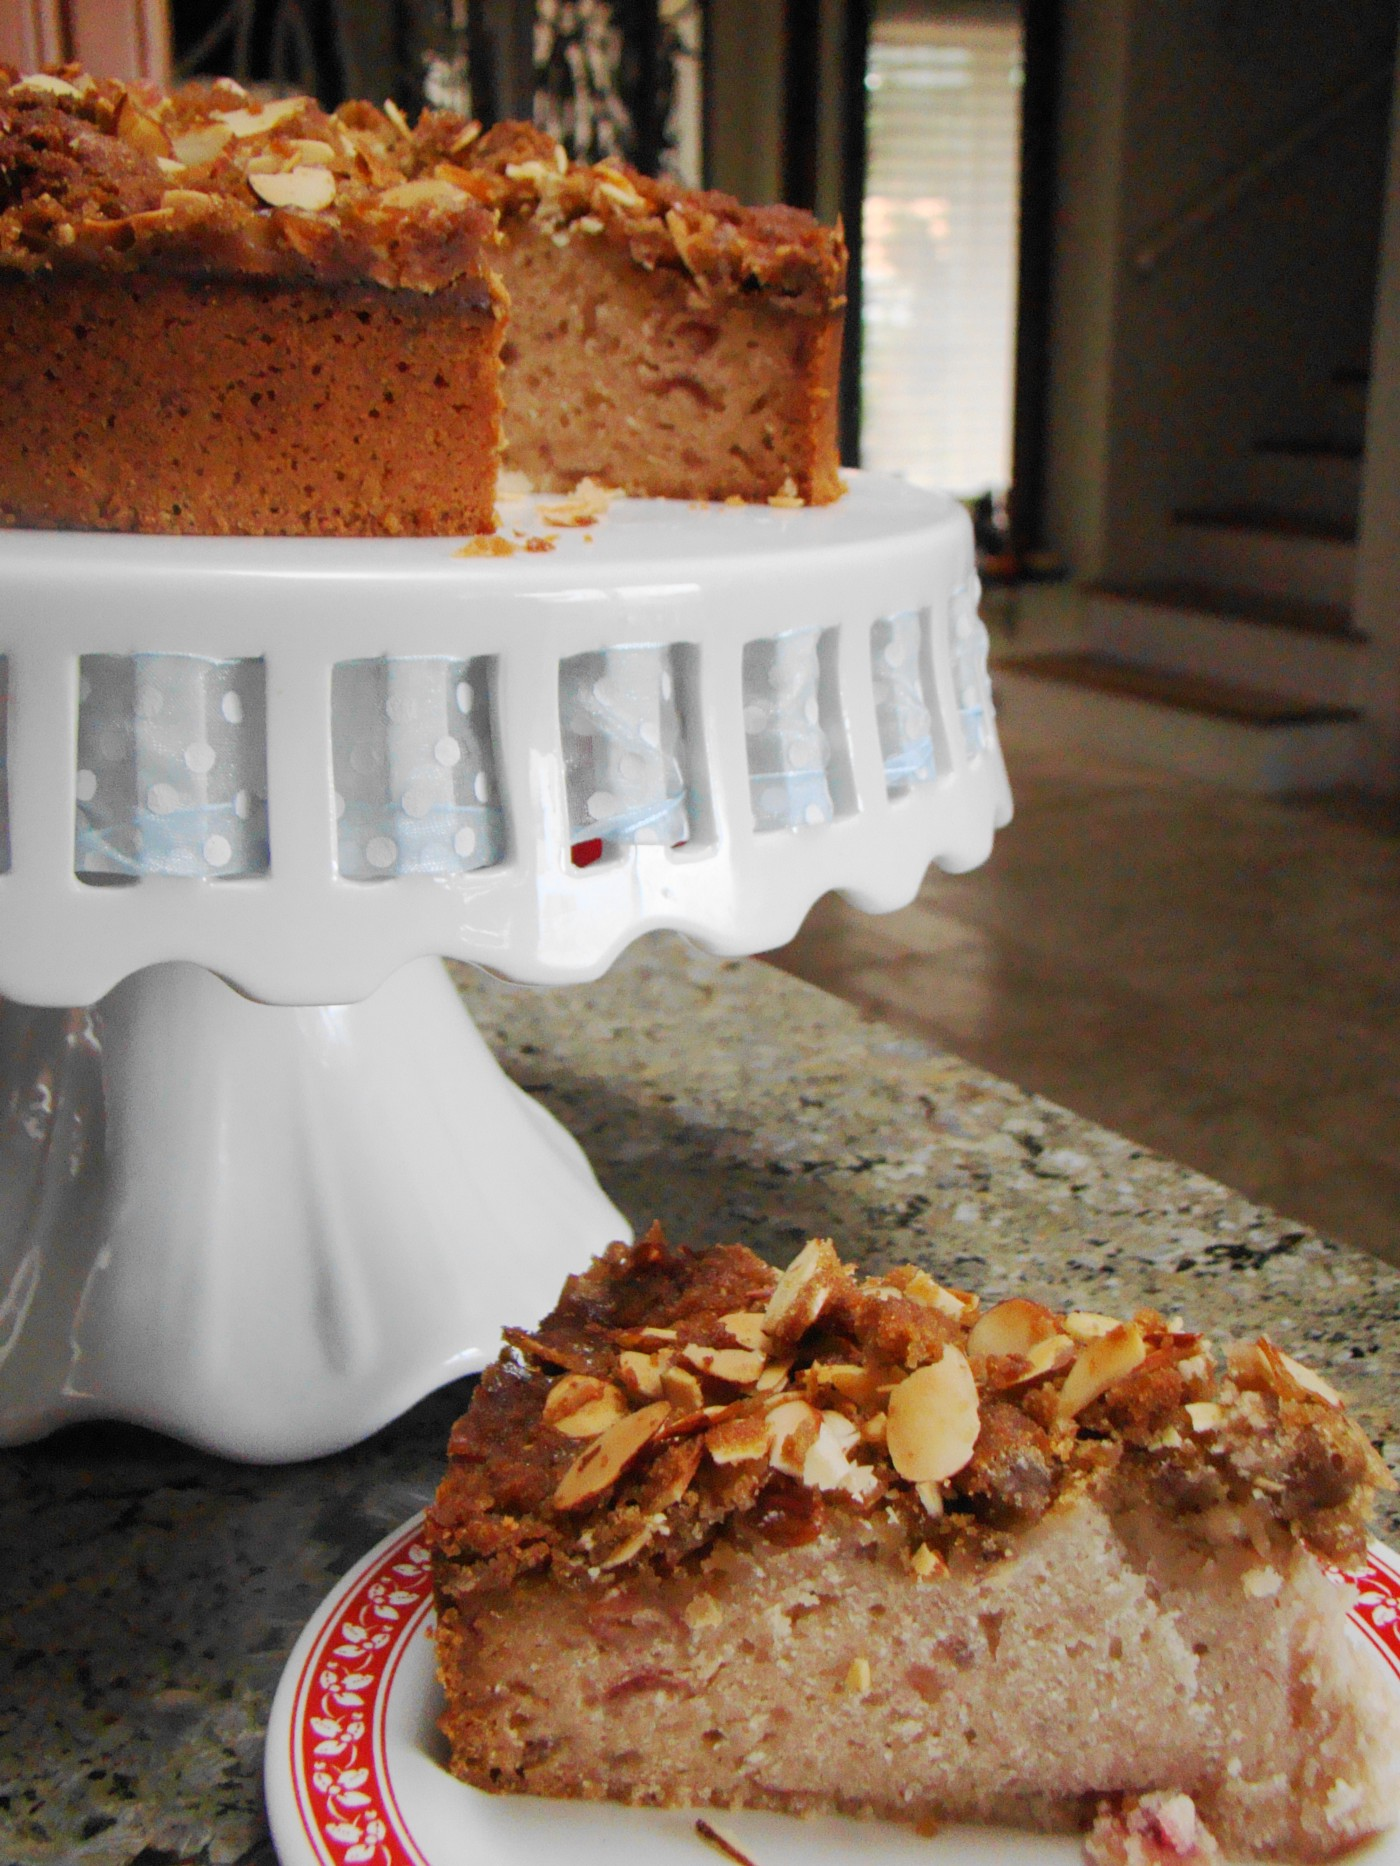 By Vegan Feast Catering—Cranberry Coffee Cake, CC BY 2.0, https://commons.wikimedia.org/w/index.php?curid=35600964